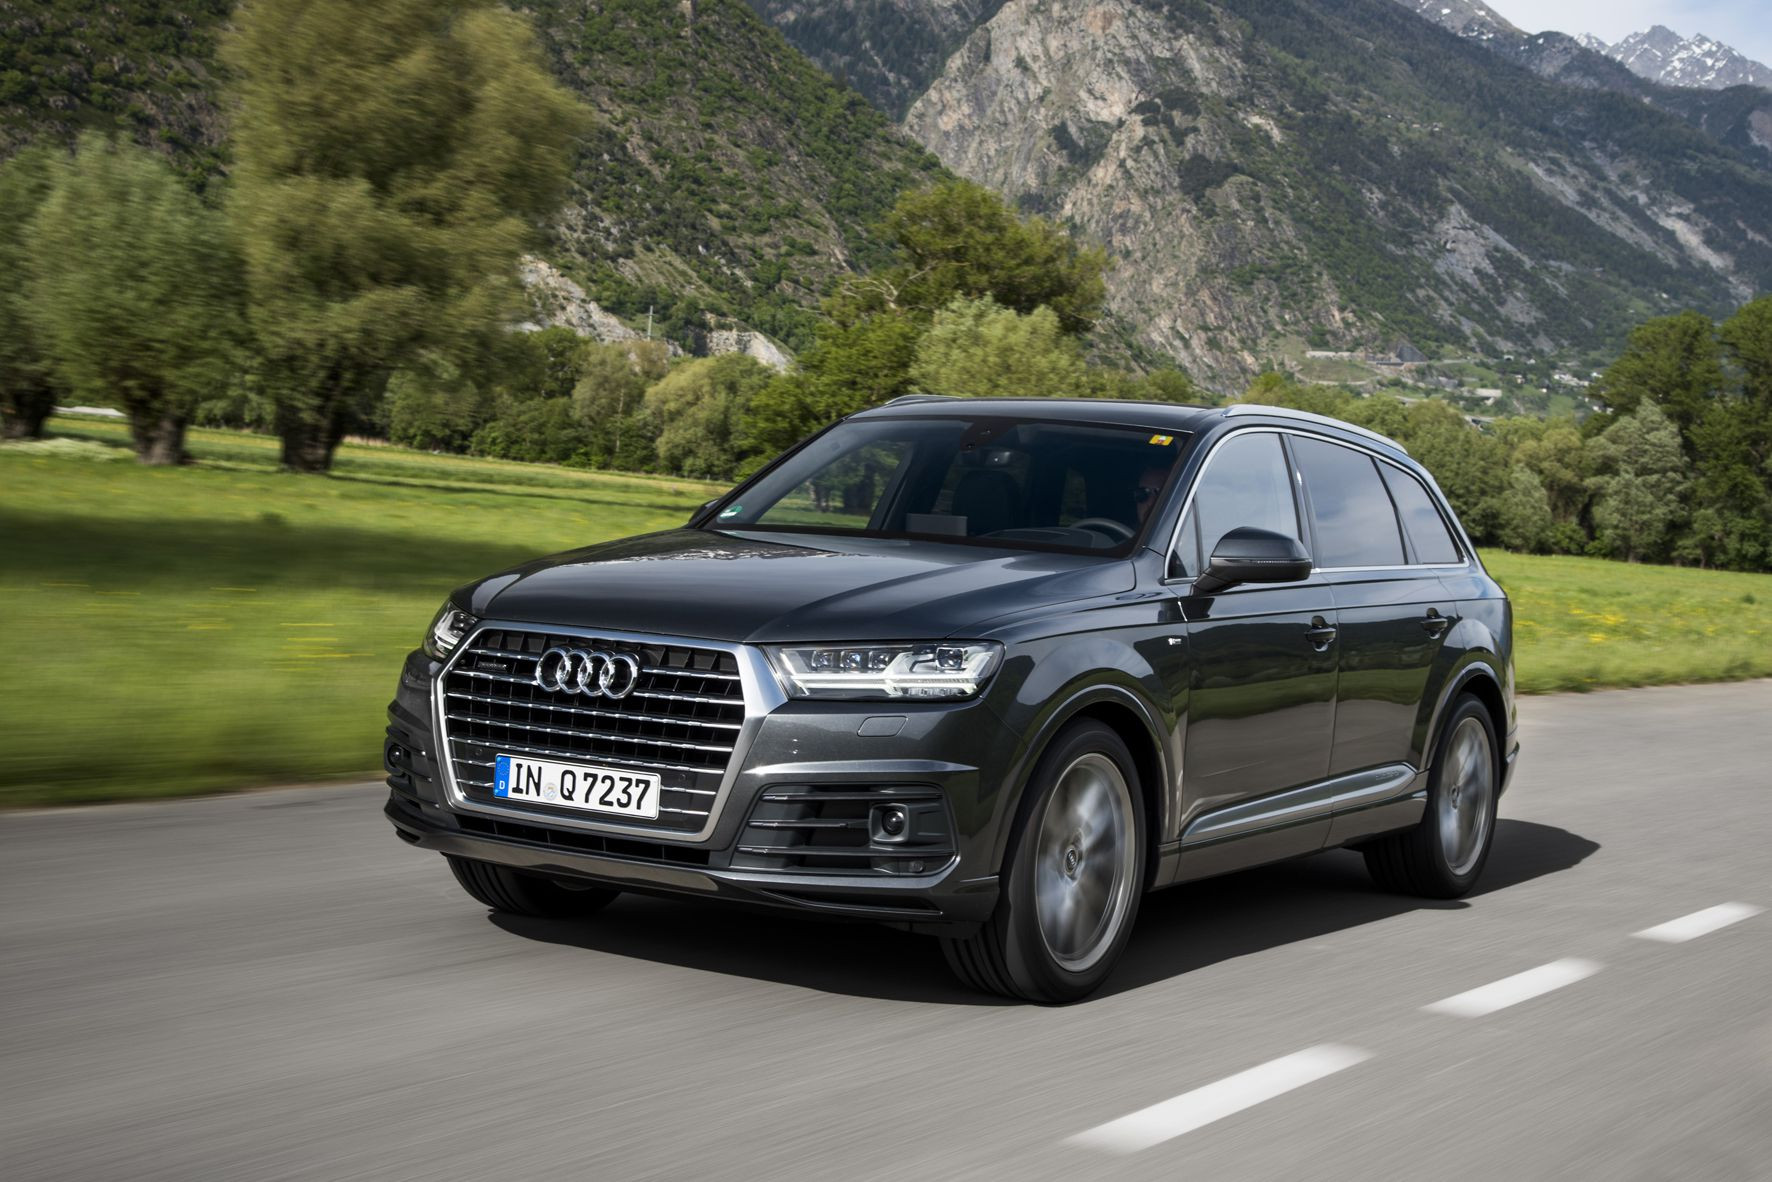 Audi Q7 driving on a road